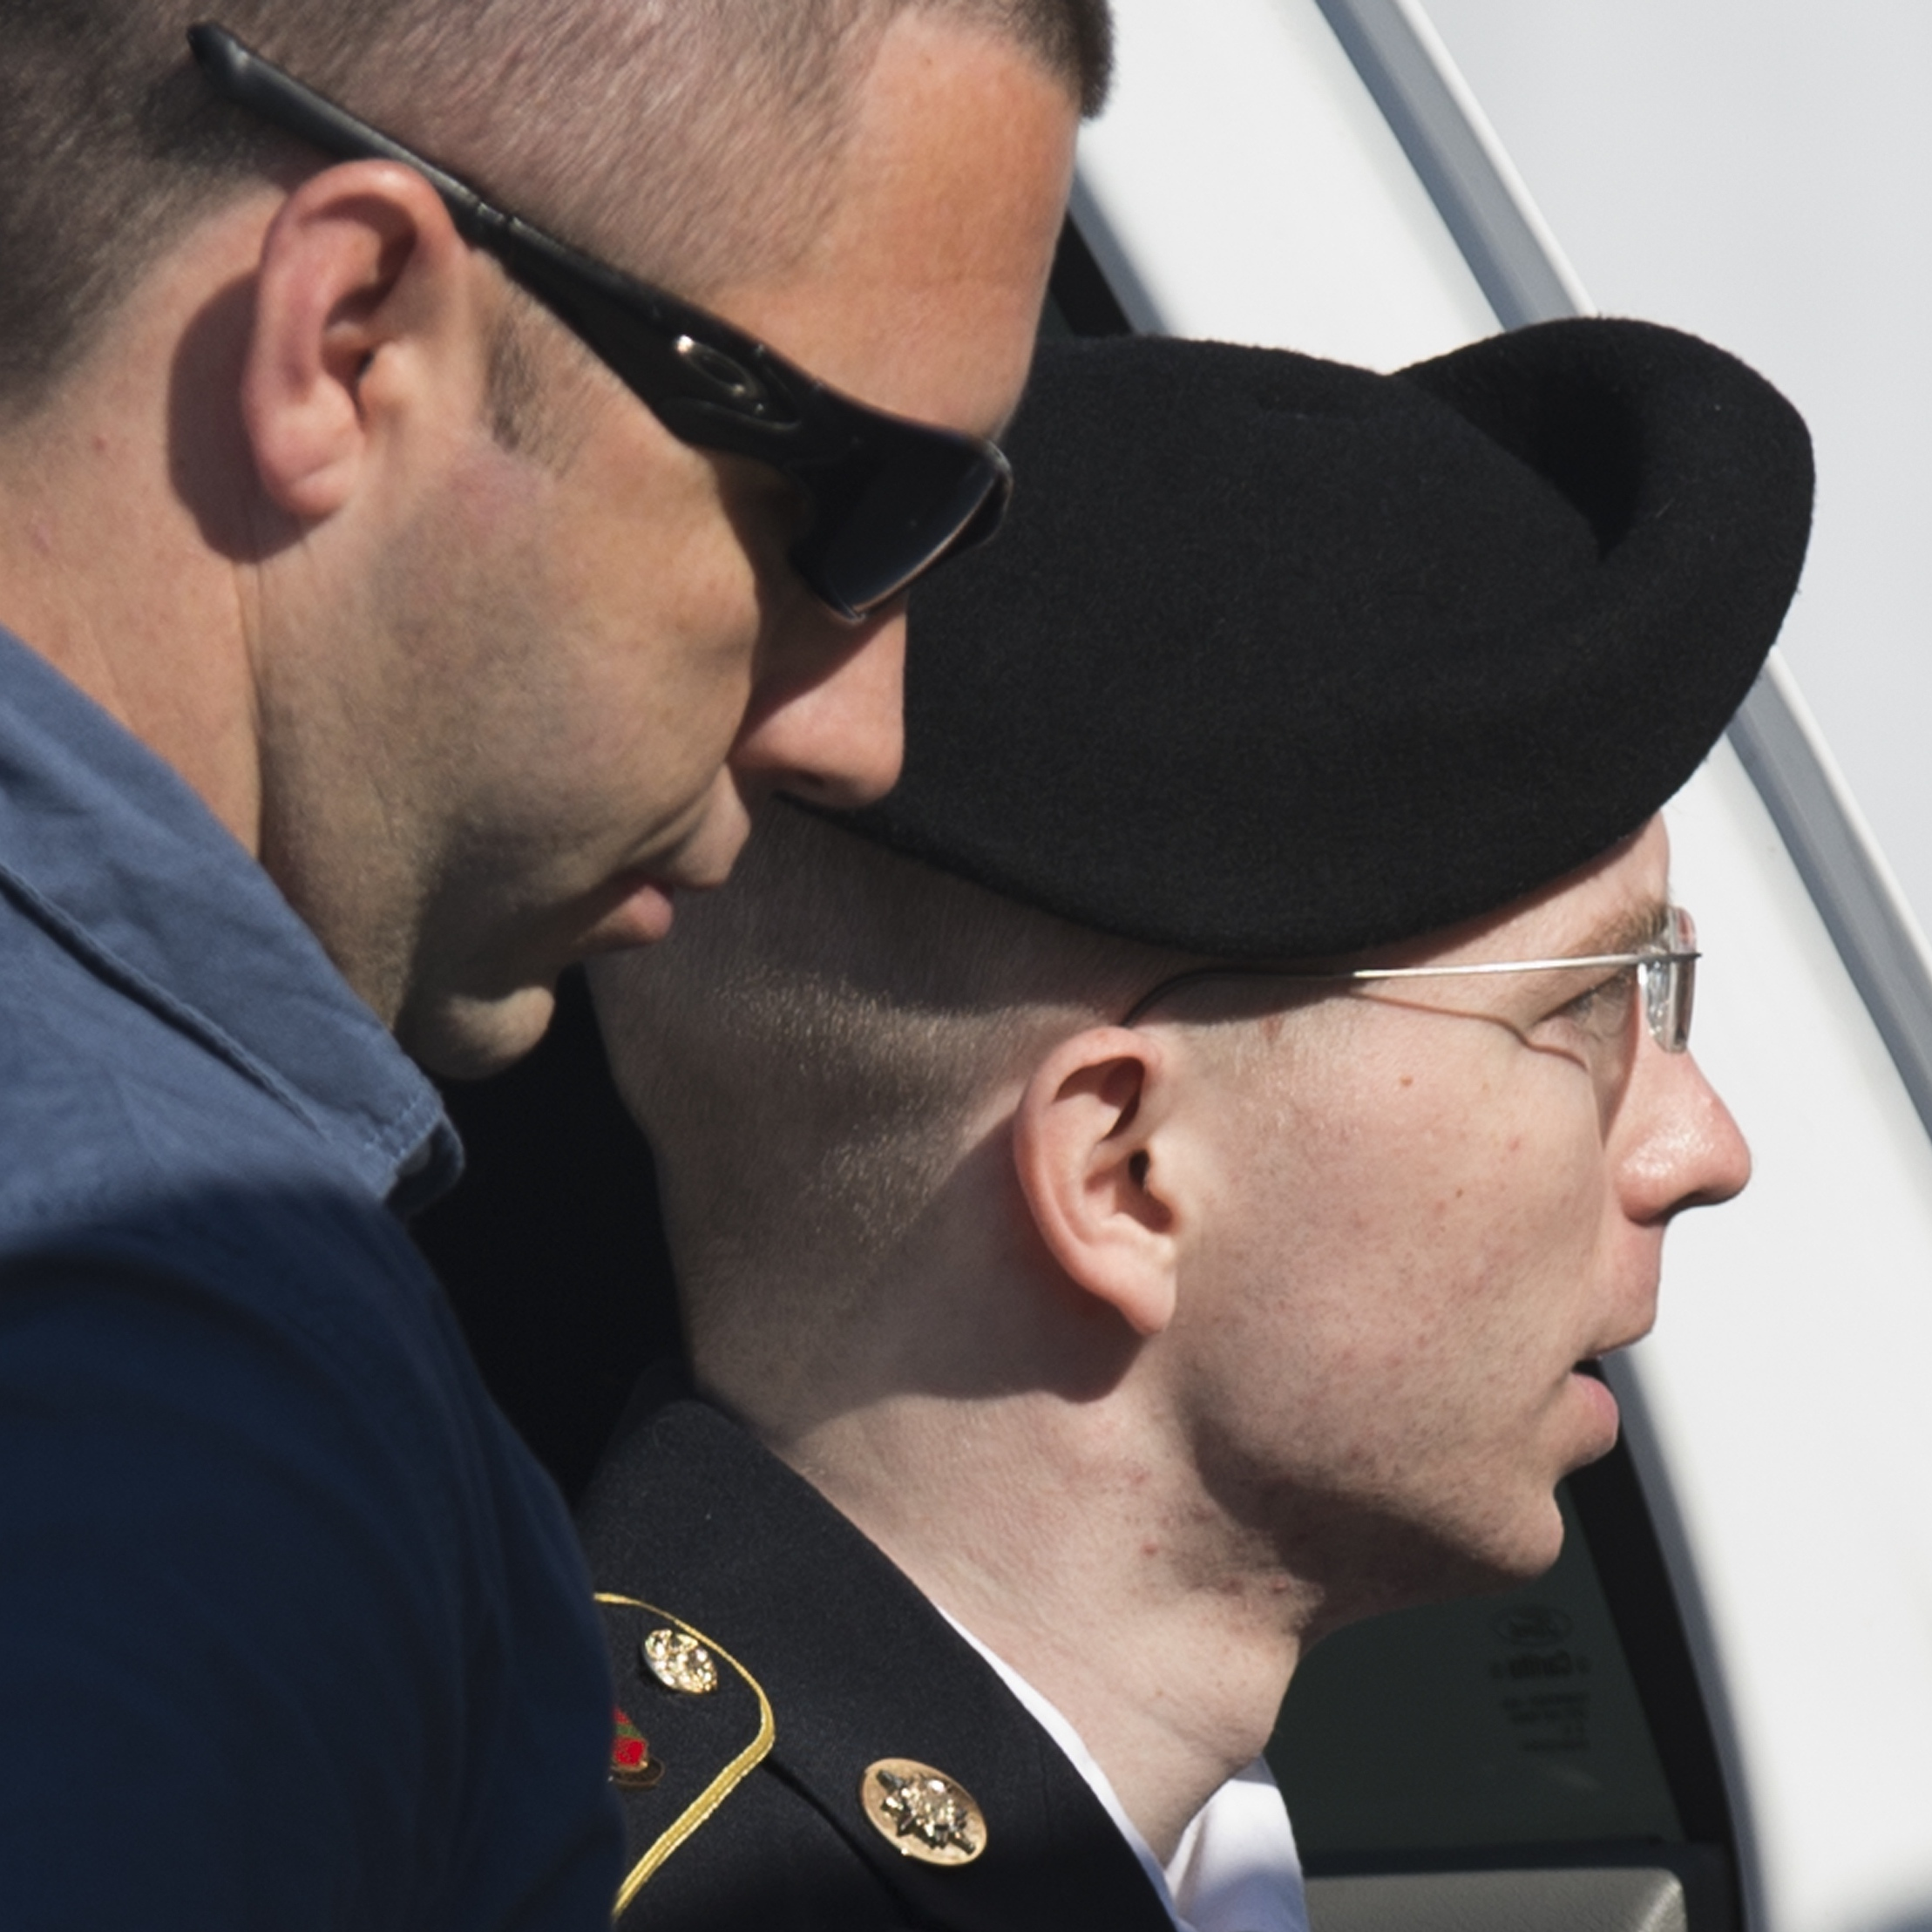 Army Pfc. Bradley Manning arrives alongside a military official at a U.S. military Magistrate Court facility Tuesday for the verdict in his trial at Fort Meade, Md.